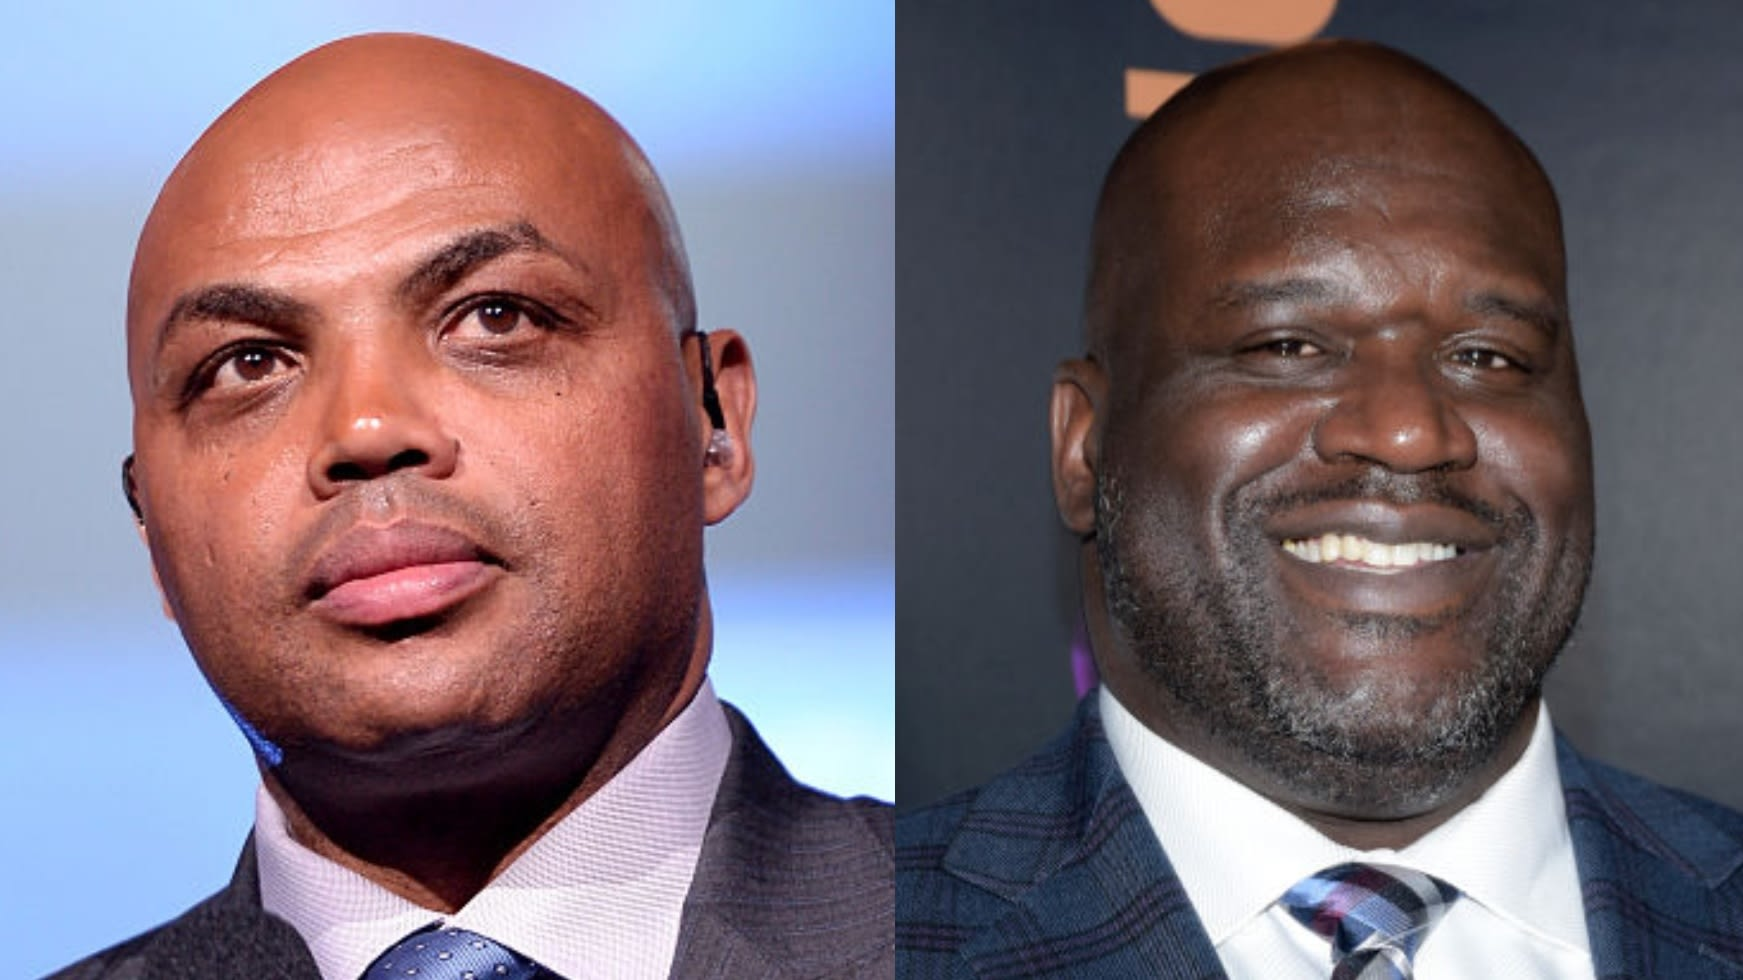 Charles Barkley And Shaquille O'Neal Catch Heat For Insensitive Comments About Breonna Taylor's Killing